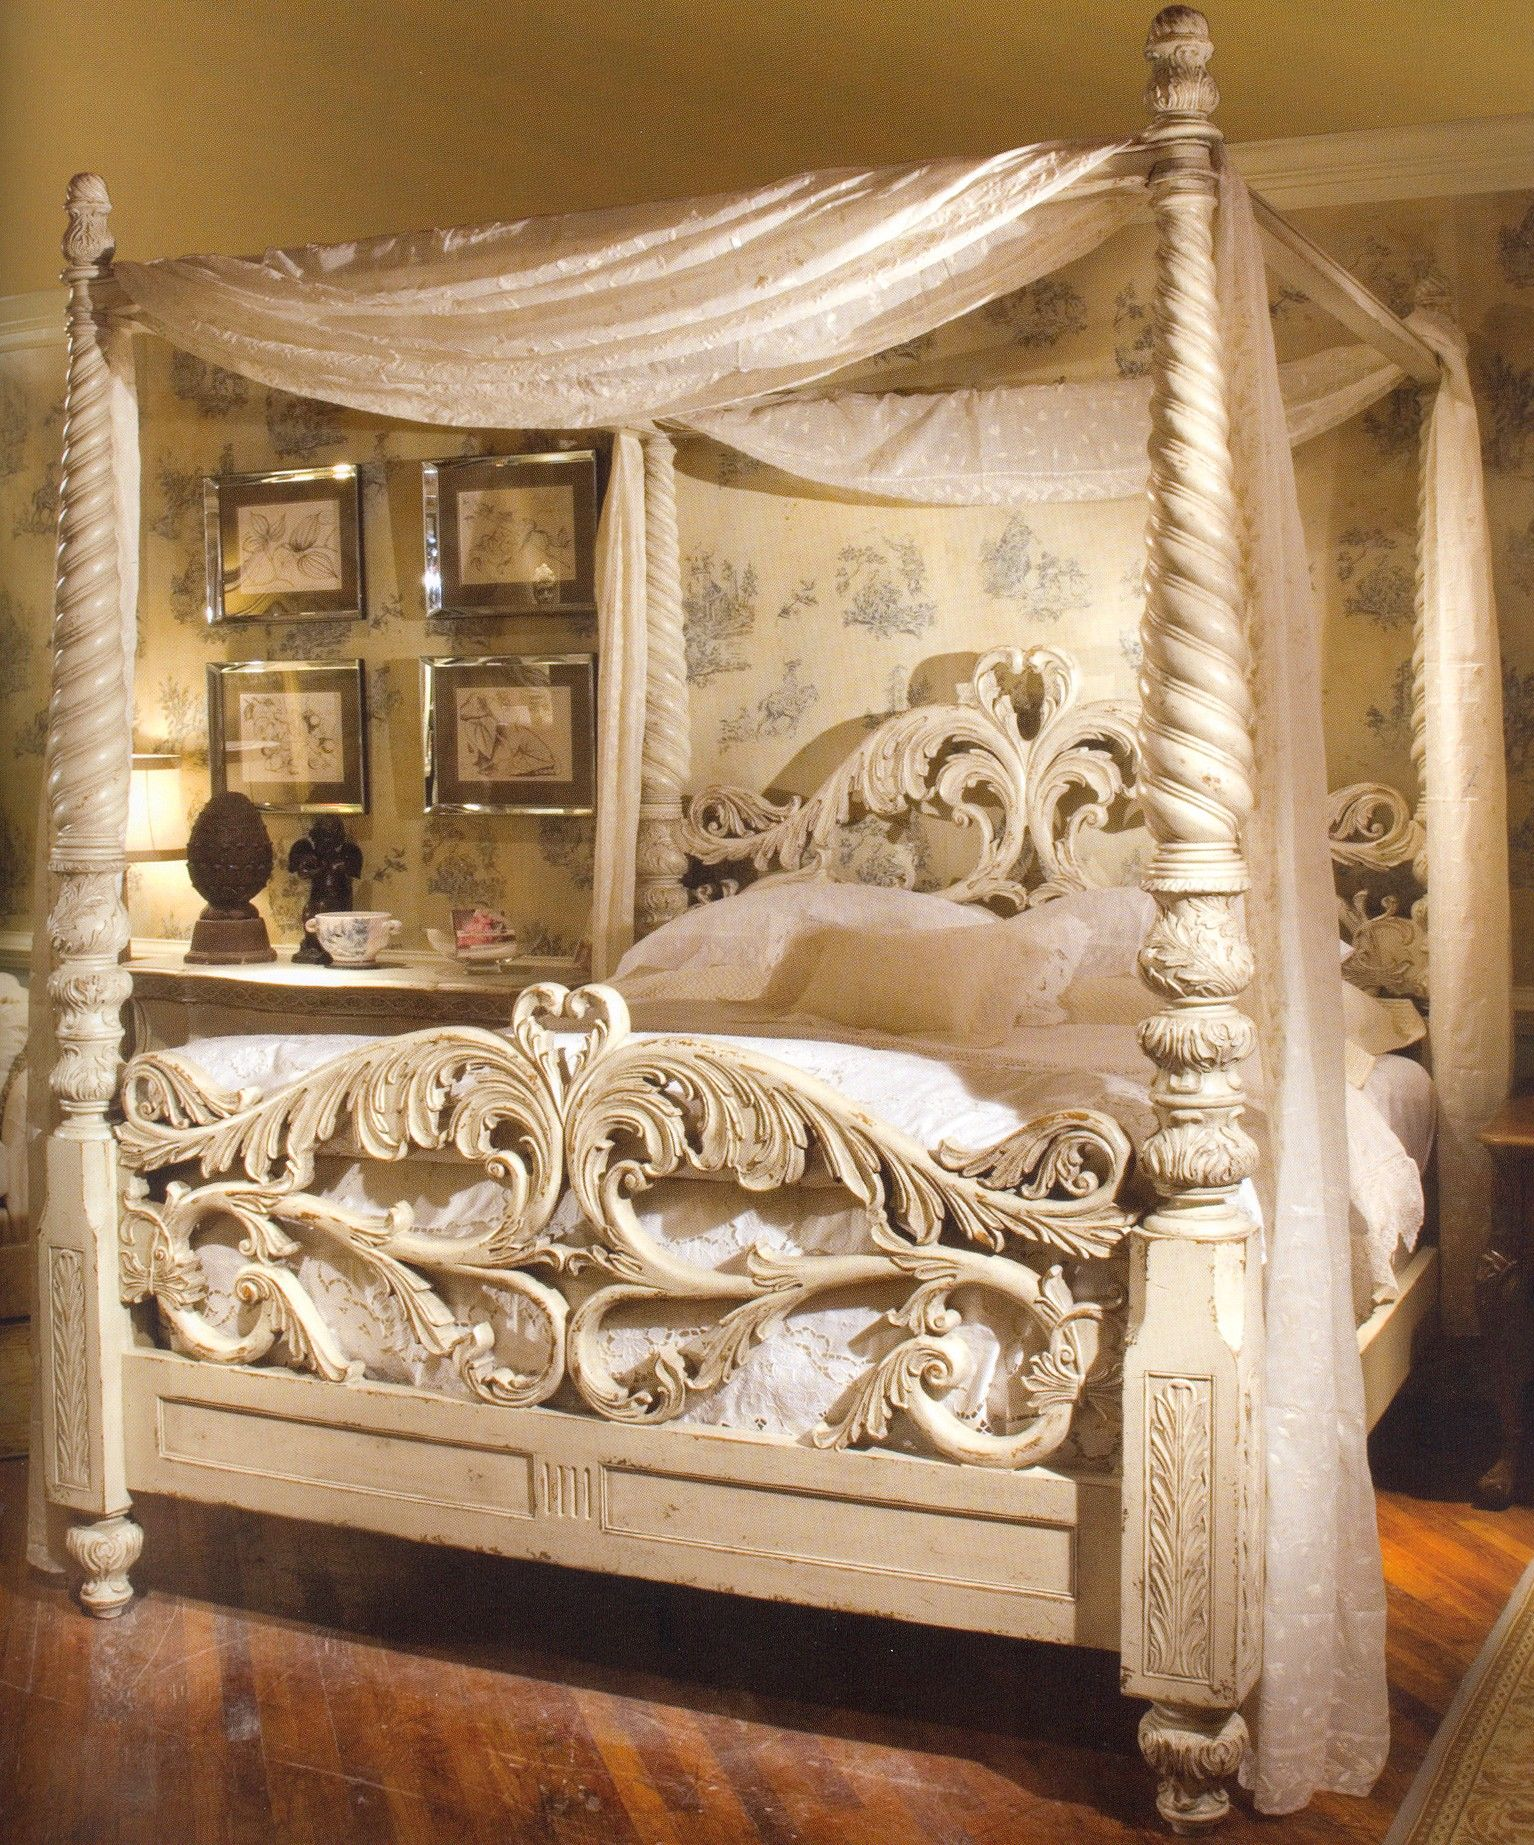 4 Poster Bed Heavenly In A